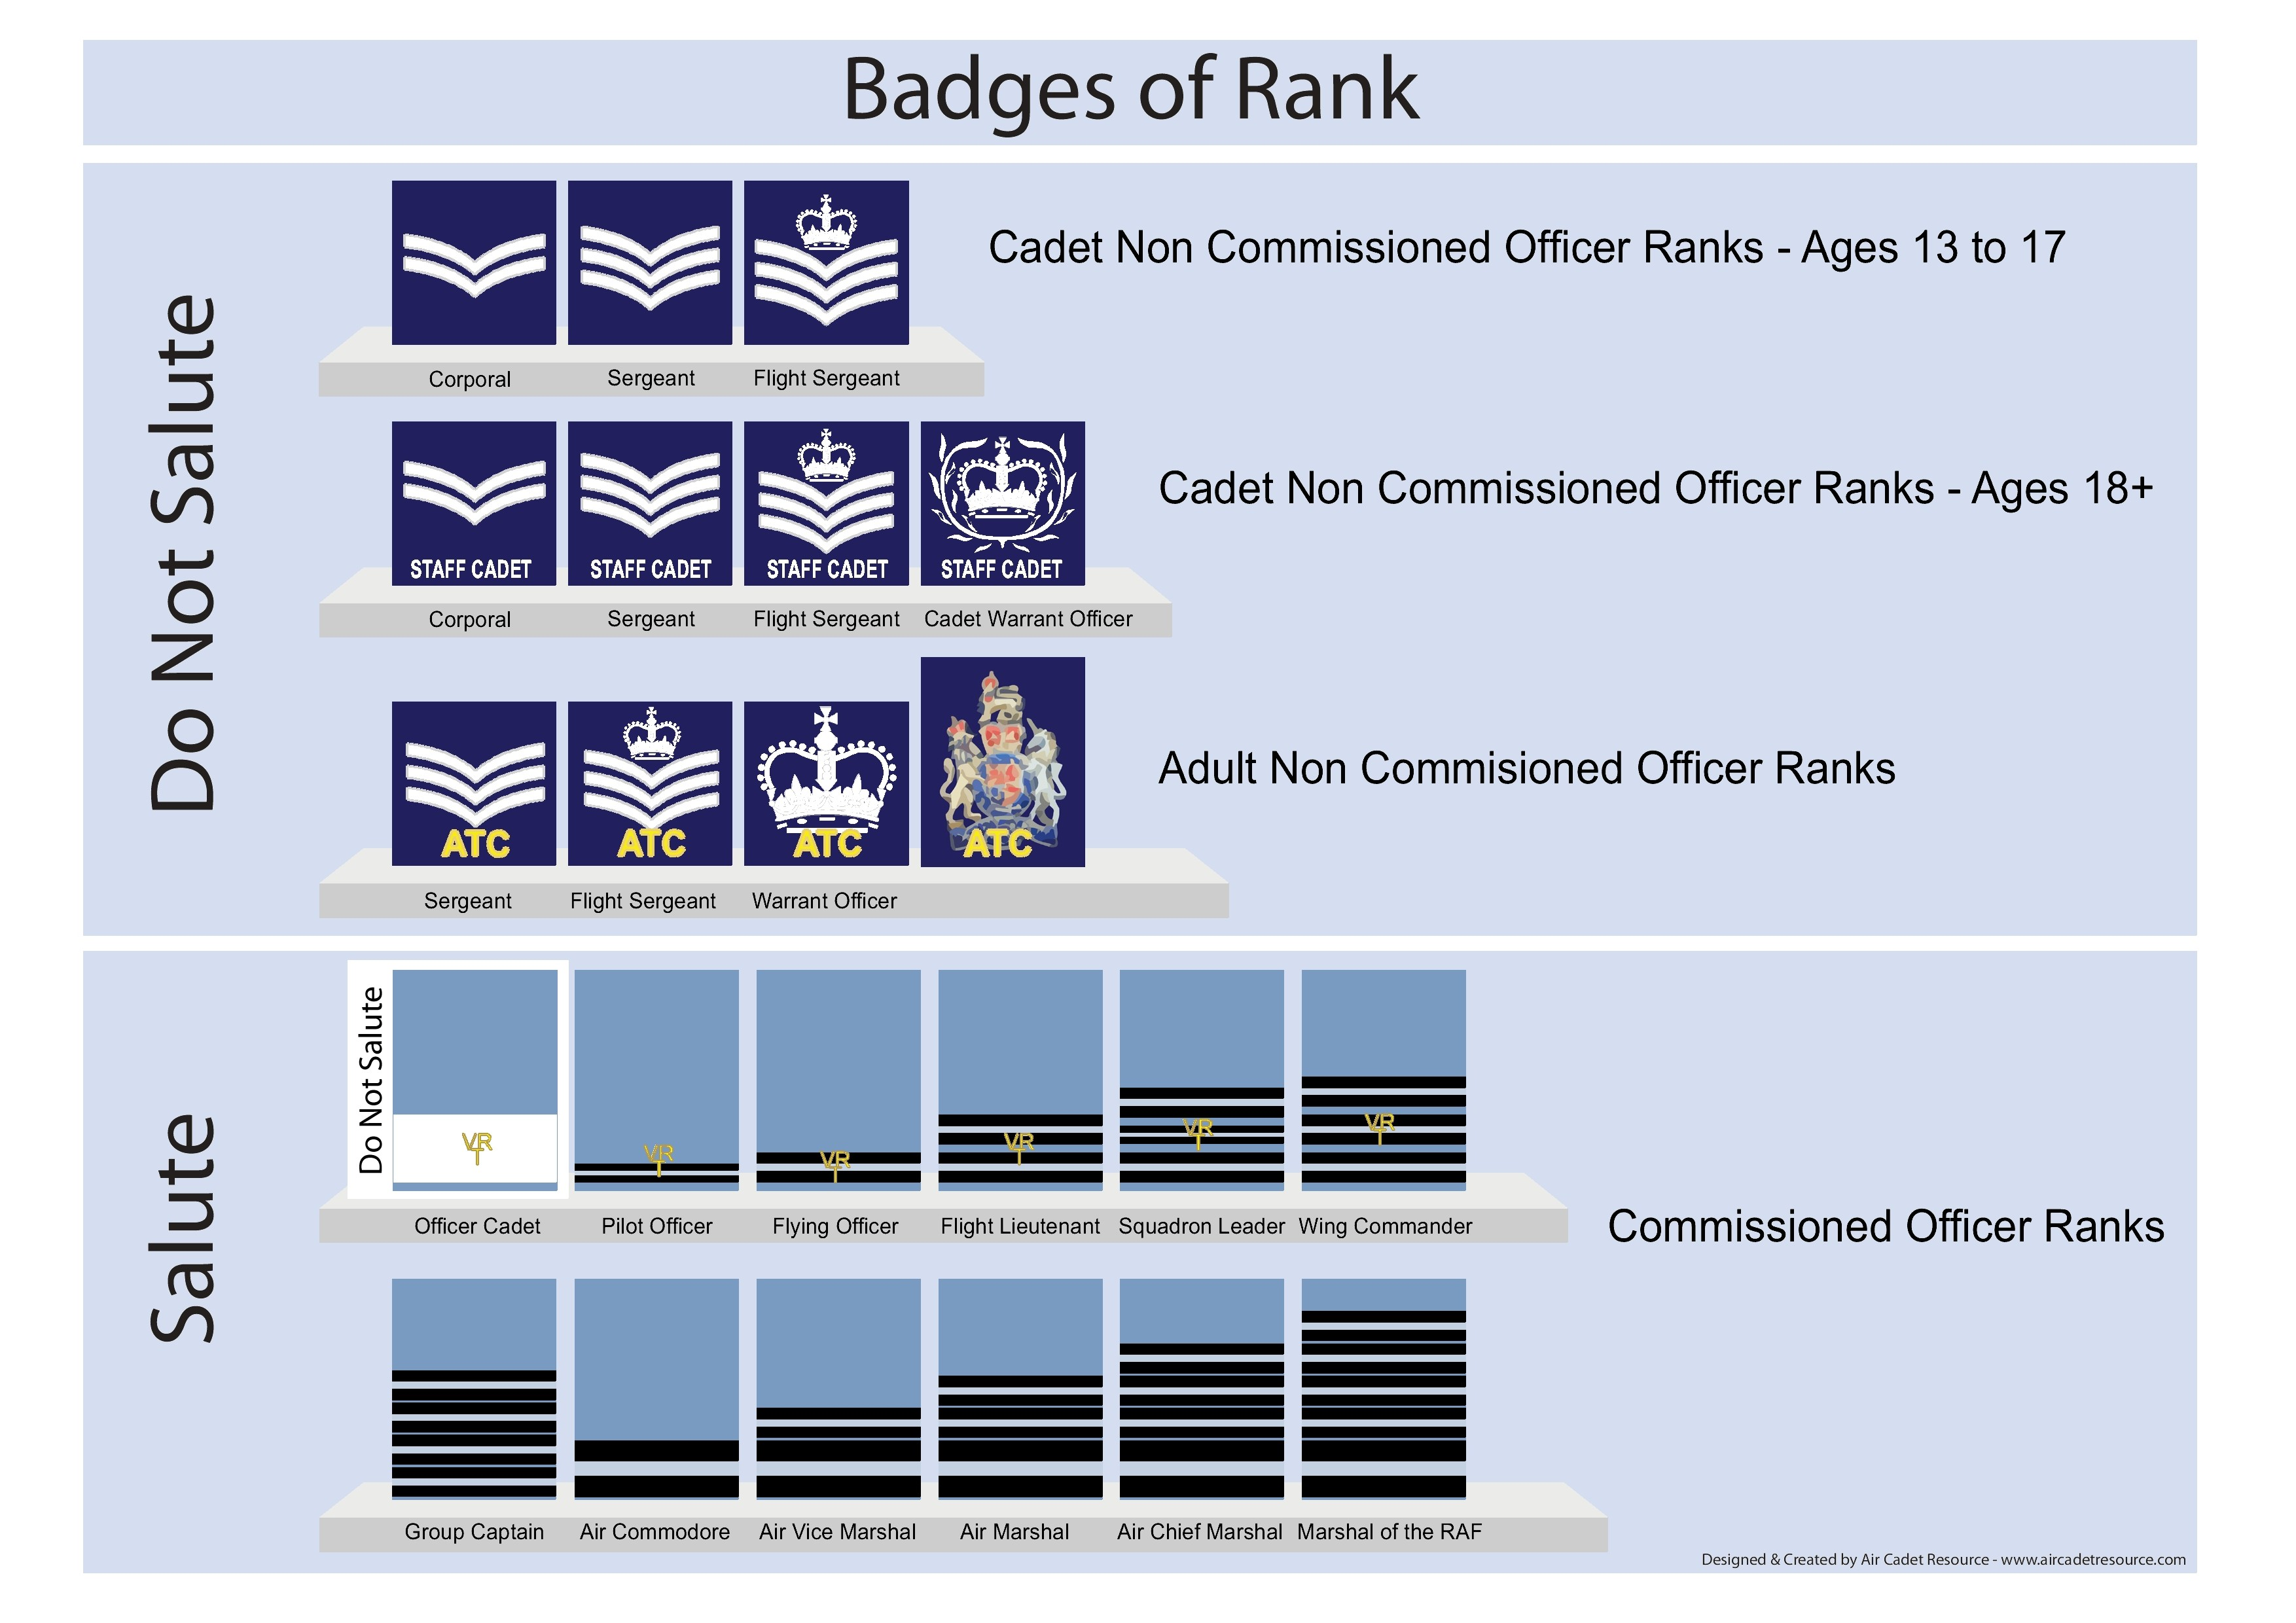 Badges of rank in the ATC